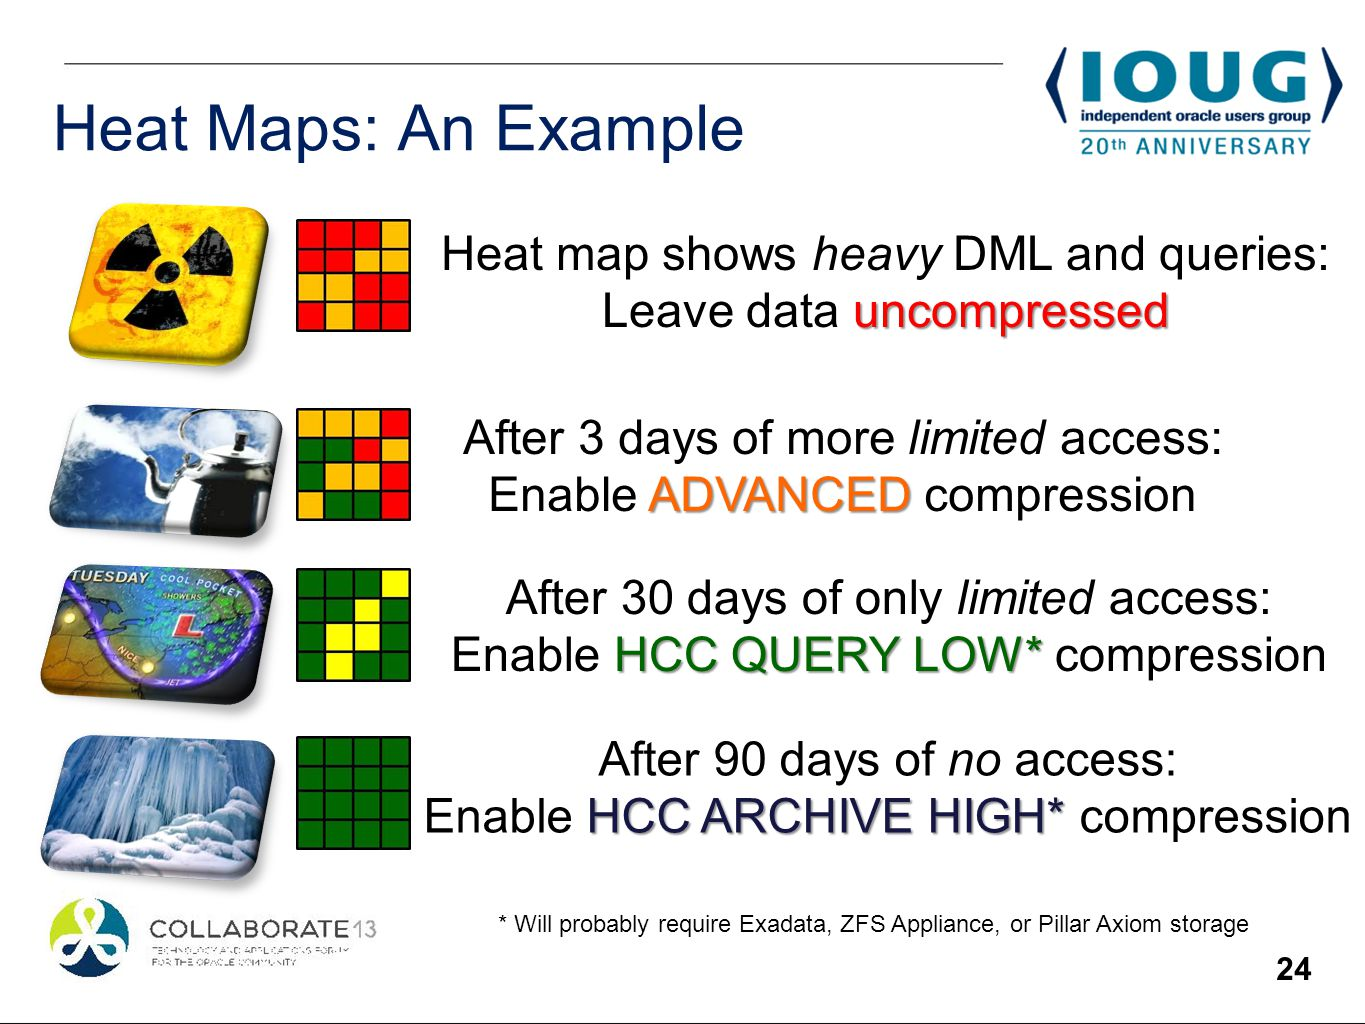 24 Heat Maps: An Example ADVANCED After 3 days of more limited access: Enable ADVANCED compression After 30 days of only limited access: HCC QUERY LOW* Enable HCC QUERY LOW* compression Heat map shows heavy DML and queries: uncompressed Leave data uncompressed After 90 days of no access: HCC ARCHIVE HIGH* Enable HCC ARCHIVE HIGH* compression * Will probably require Exadata, ZFS Appliance, or Pillar Axiom storage